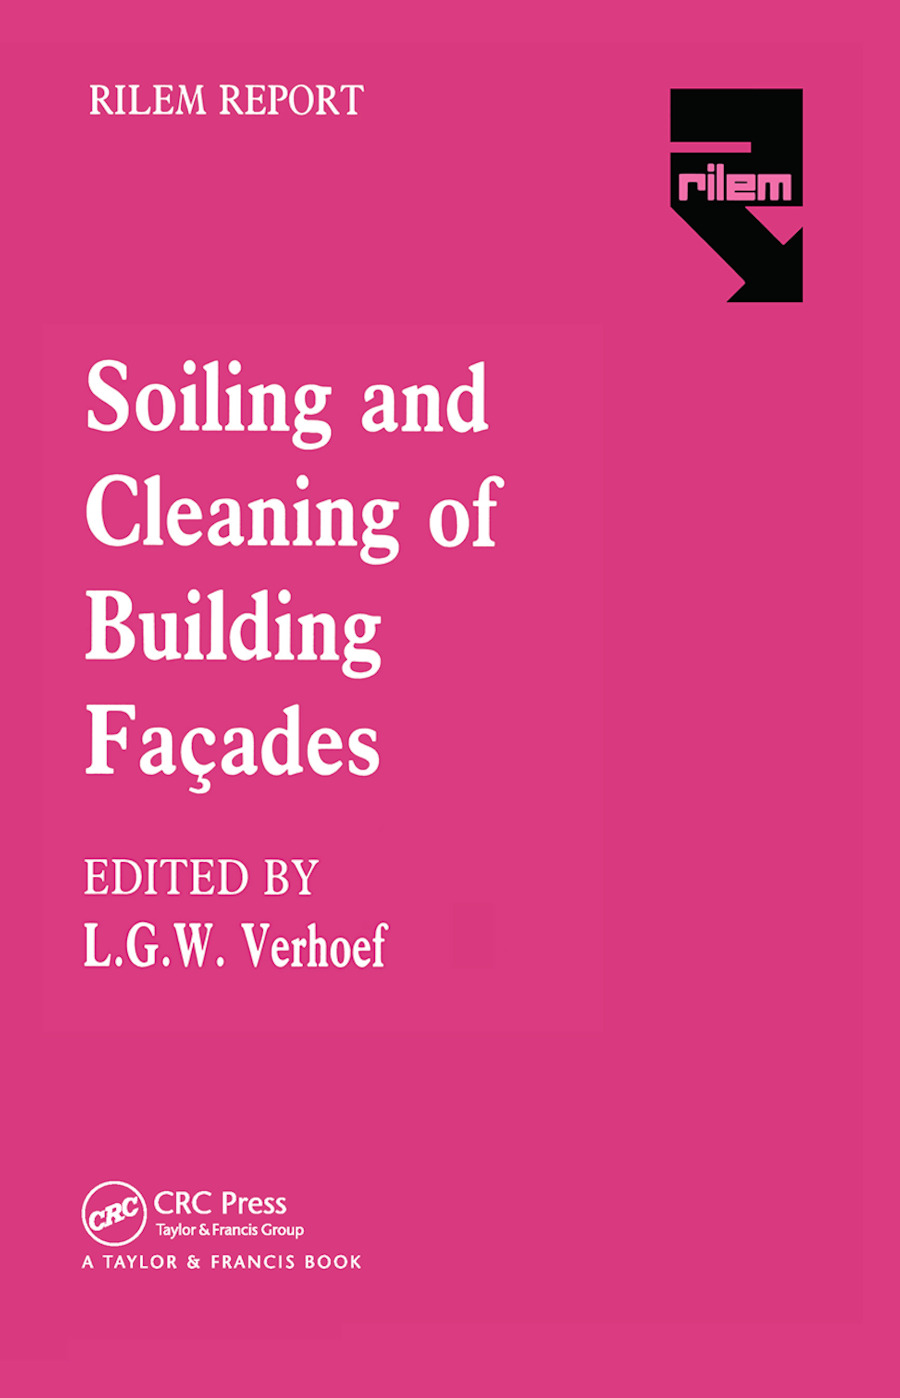 The Soiling and Cleaning of Building Facades